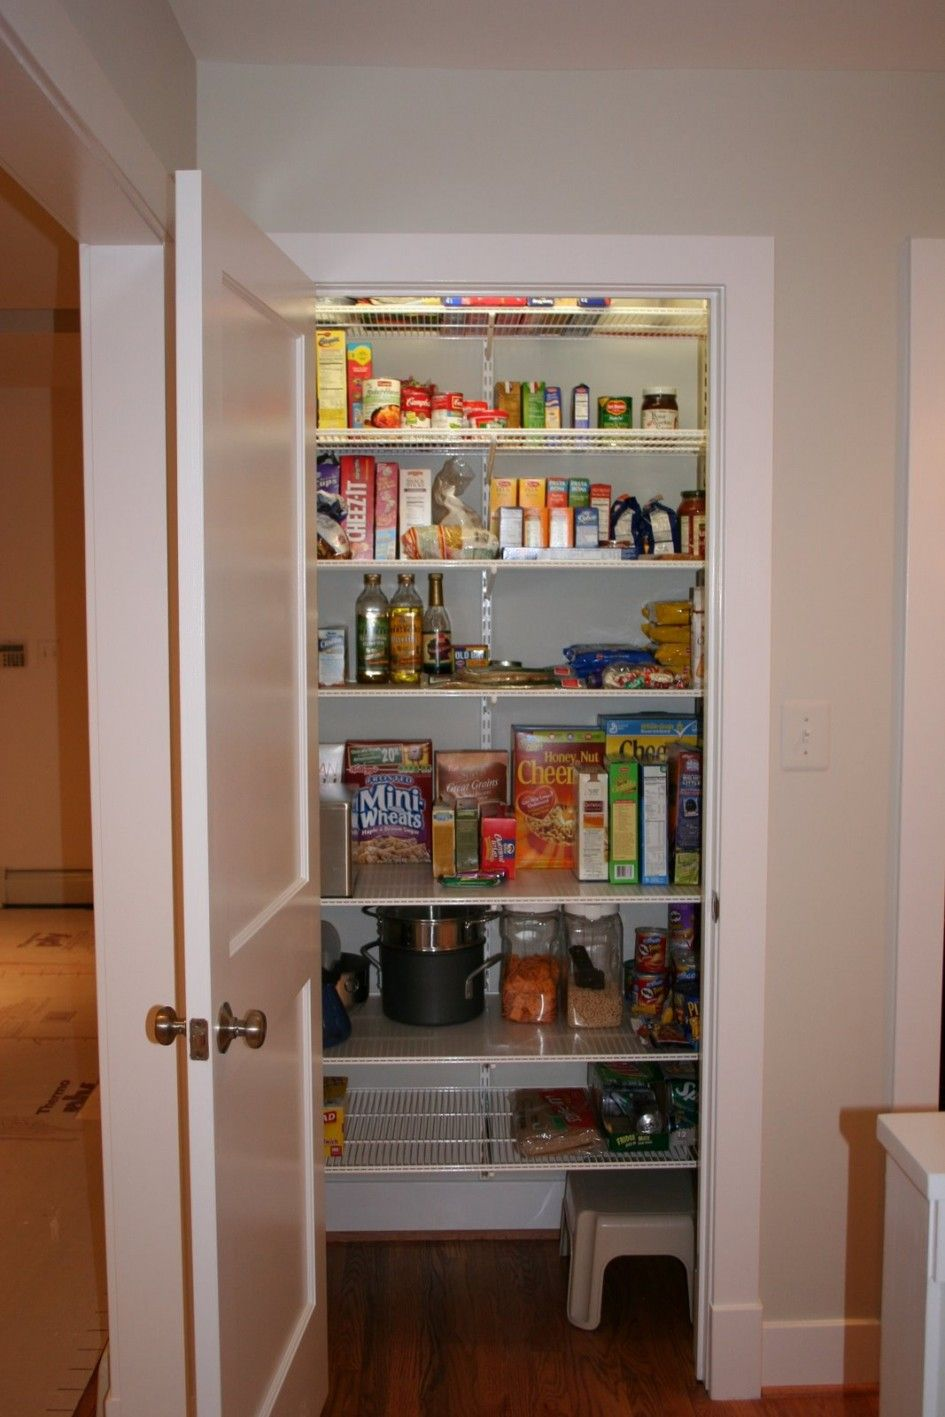 Pantry Storage Awe Inspiring Pantry Closet Storage Systems With Wall  Mounted Wire Shelving Systems On Adjustable Wall Shelf Brackets Also  Plastic Kitchen ...